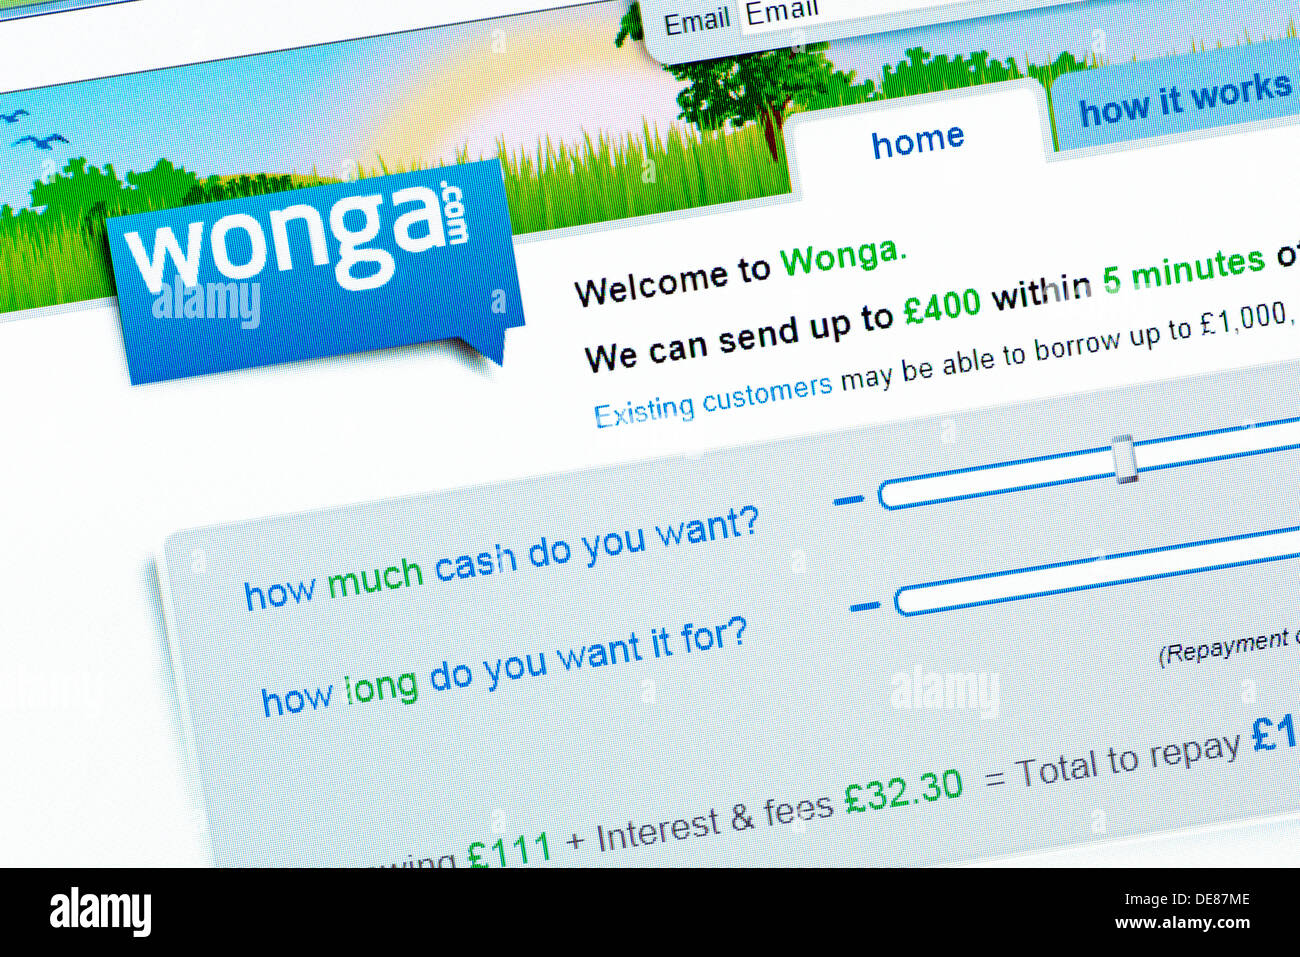 Wonga.com. Website of the Payday Loan Company. Wonga.com offer short term high interest credit to consumers and businesses. - Stock Image